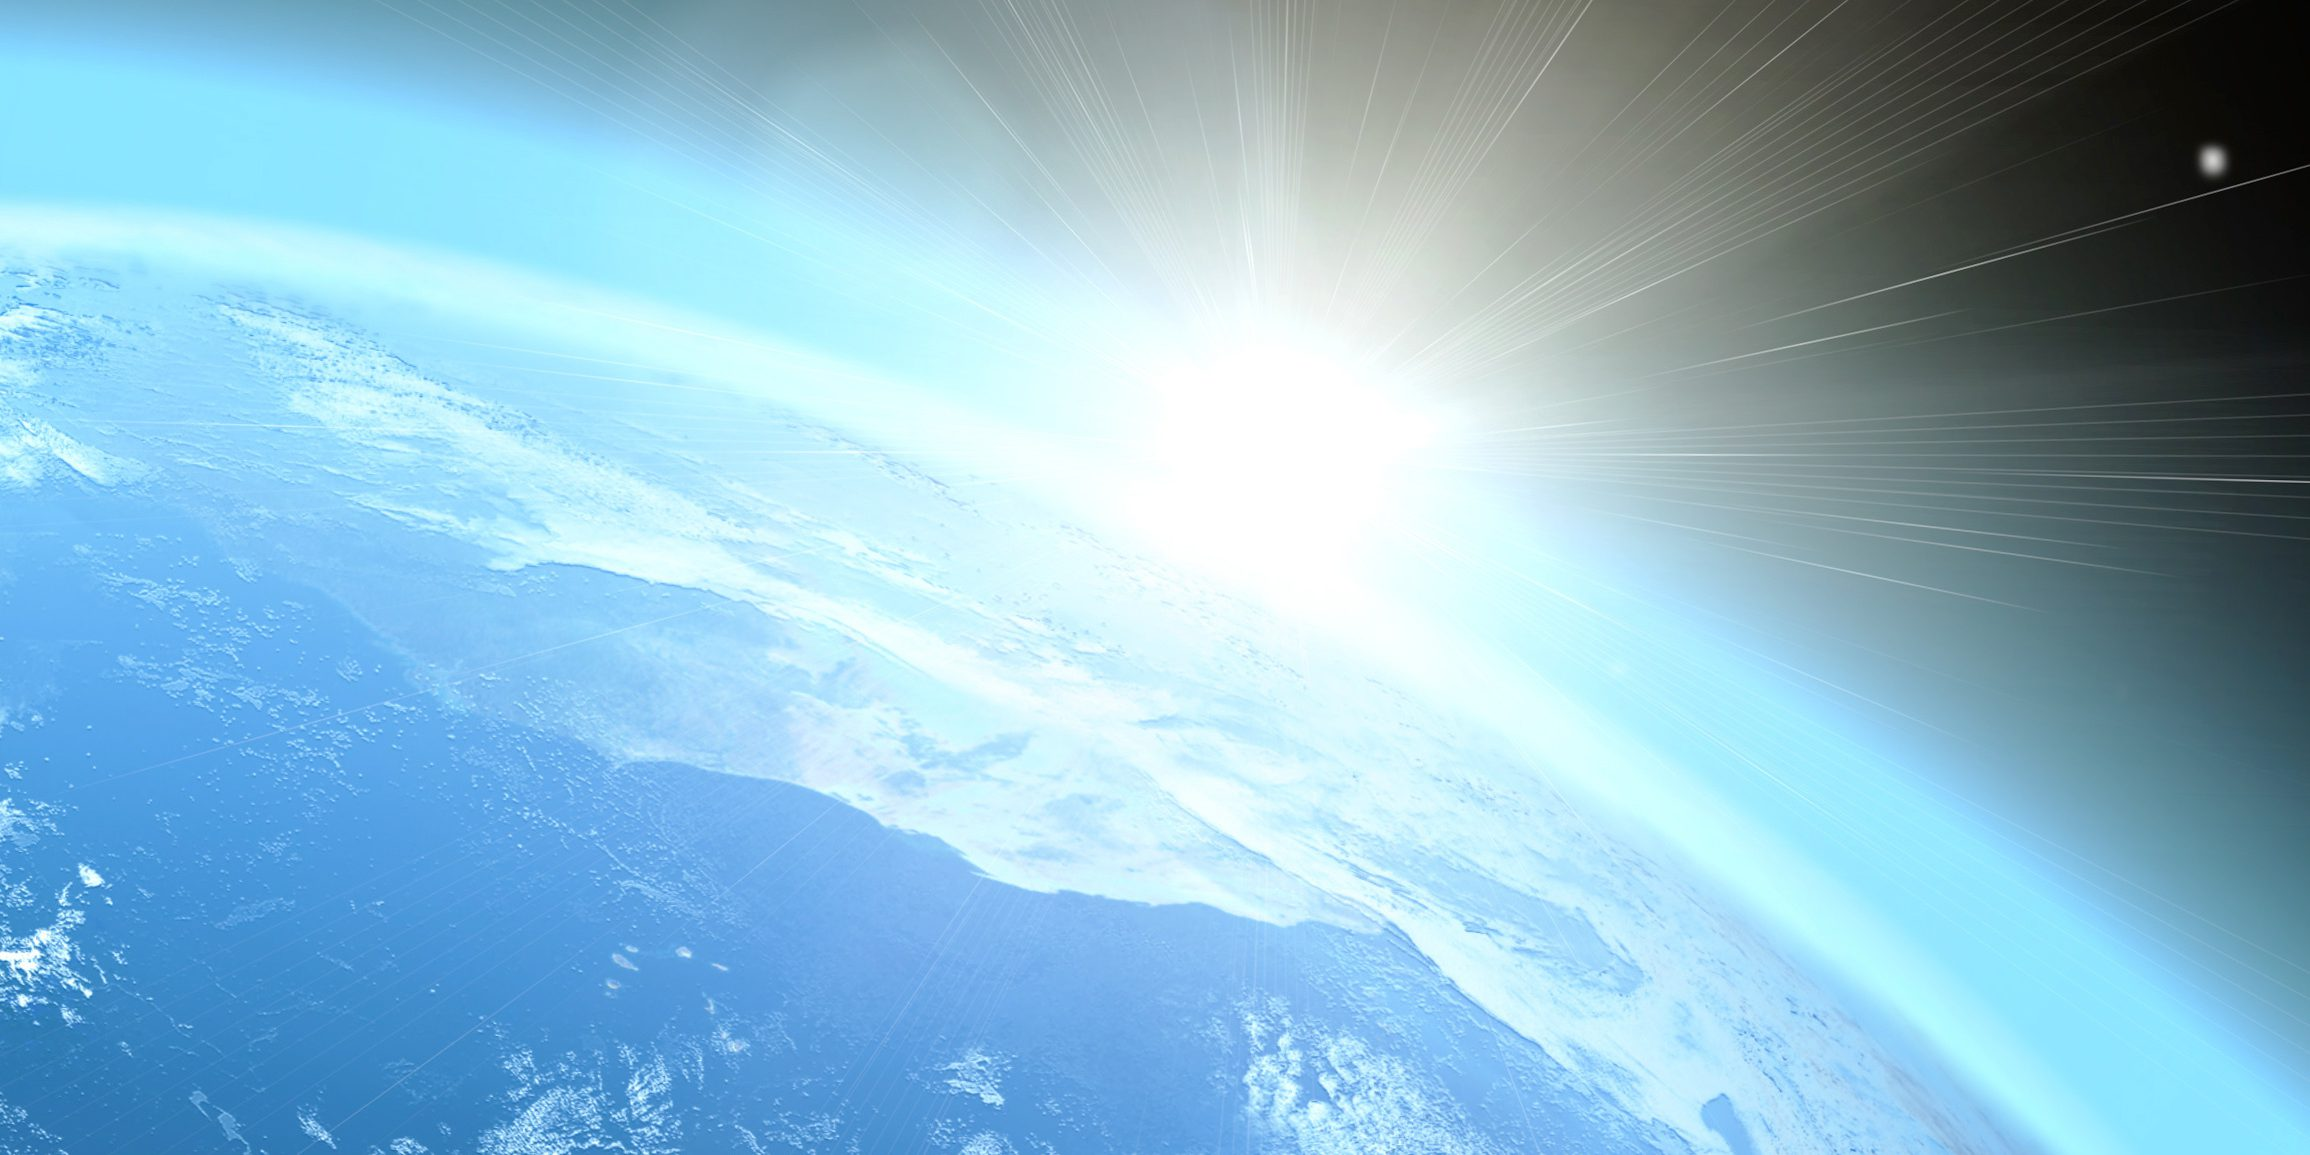 Source:  Shutterstock, https://www.shutterstock.com/image-photo/blue-planet-earth-space-elements-this-128721551